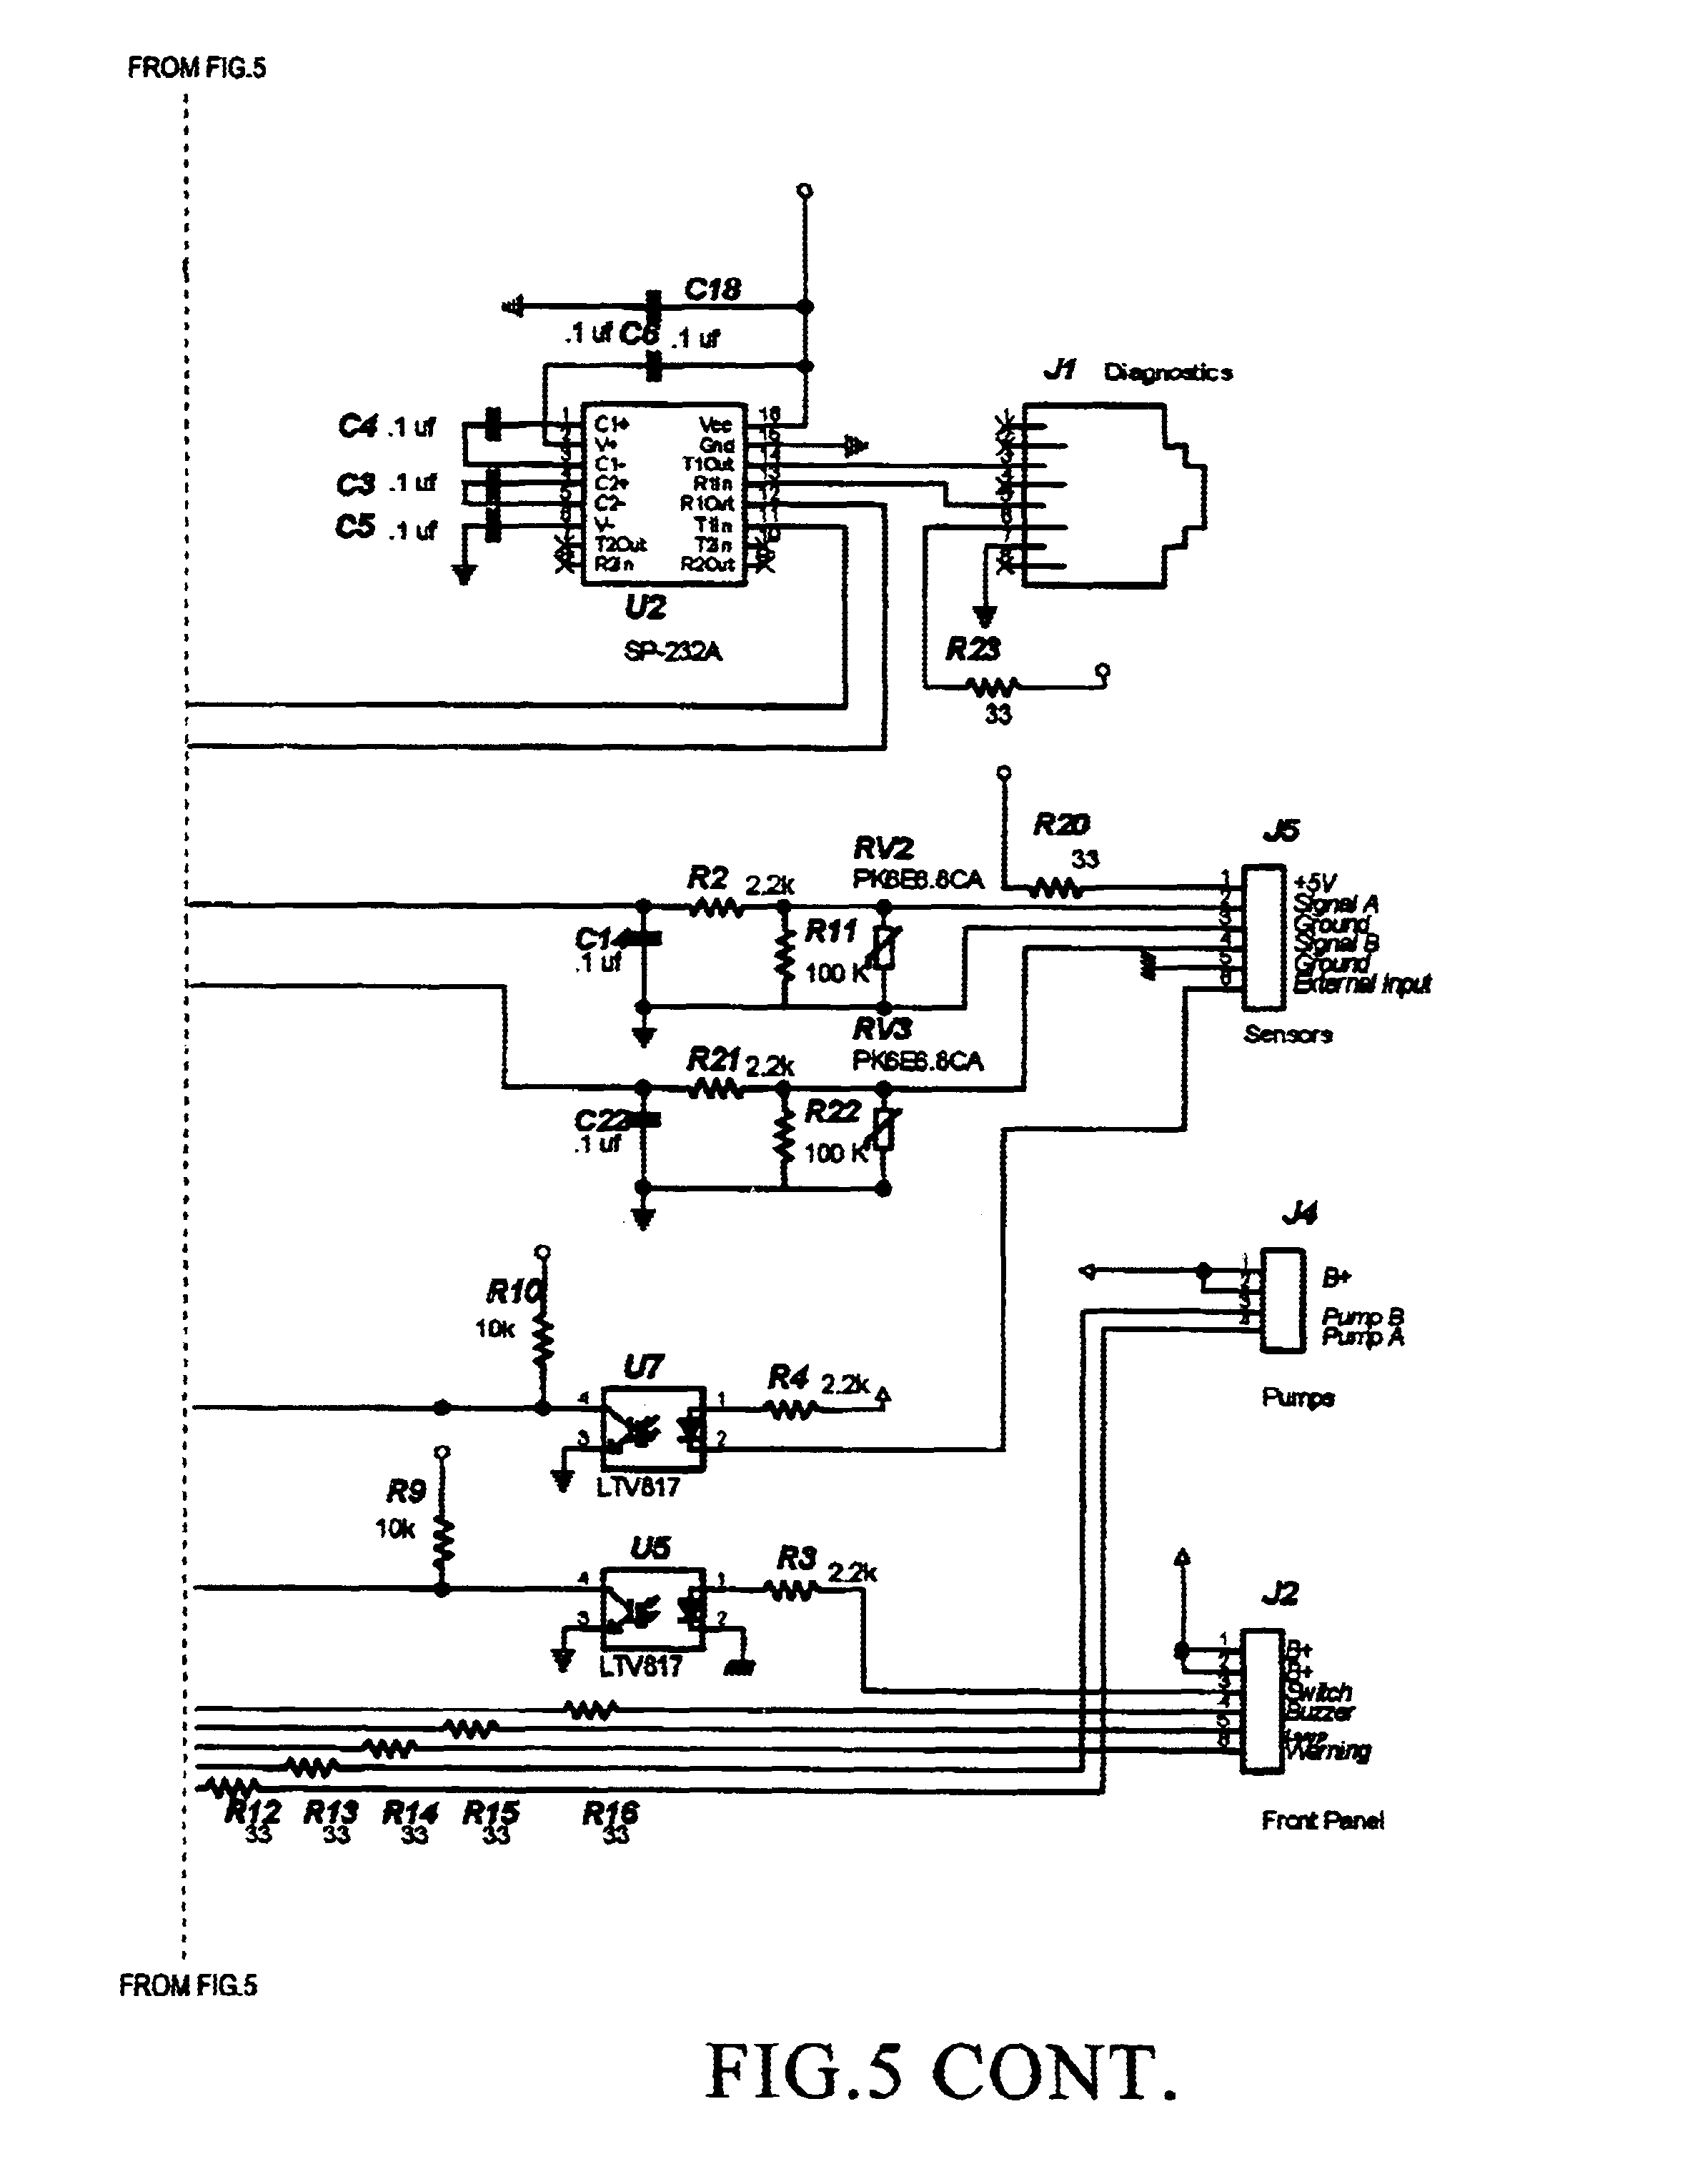 modad sewer system diagram 22re injector wiring aerobic septic data schemaseptic tank control diagrams hubs